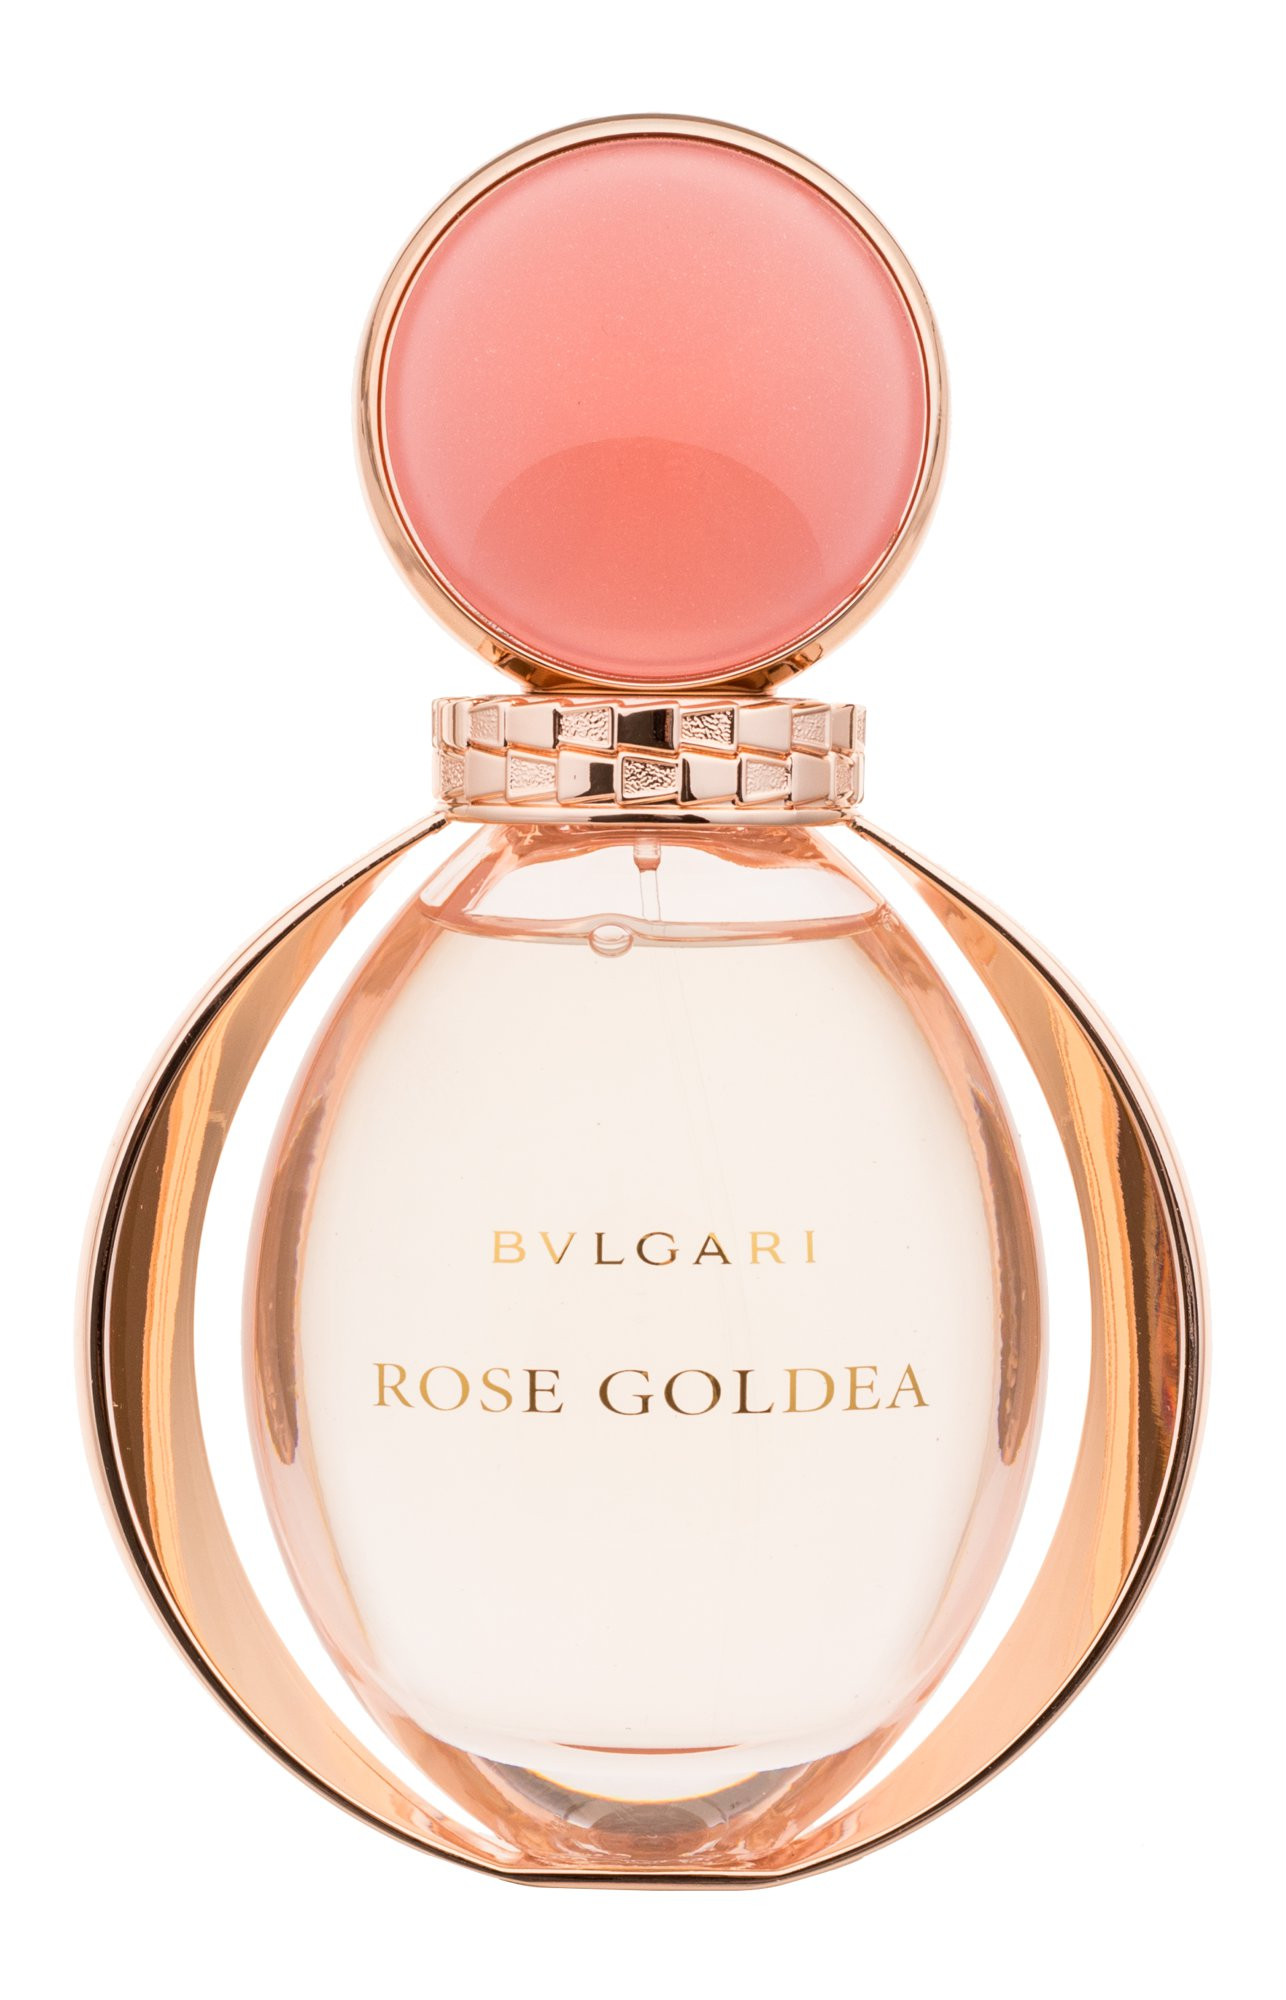 Bvlgari Rose Goldea, Parfumovaná voda 90ml